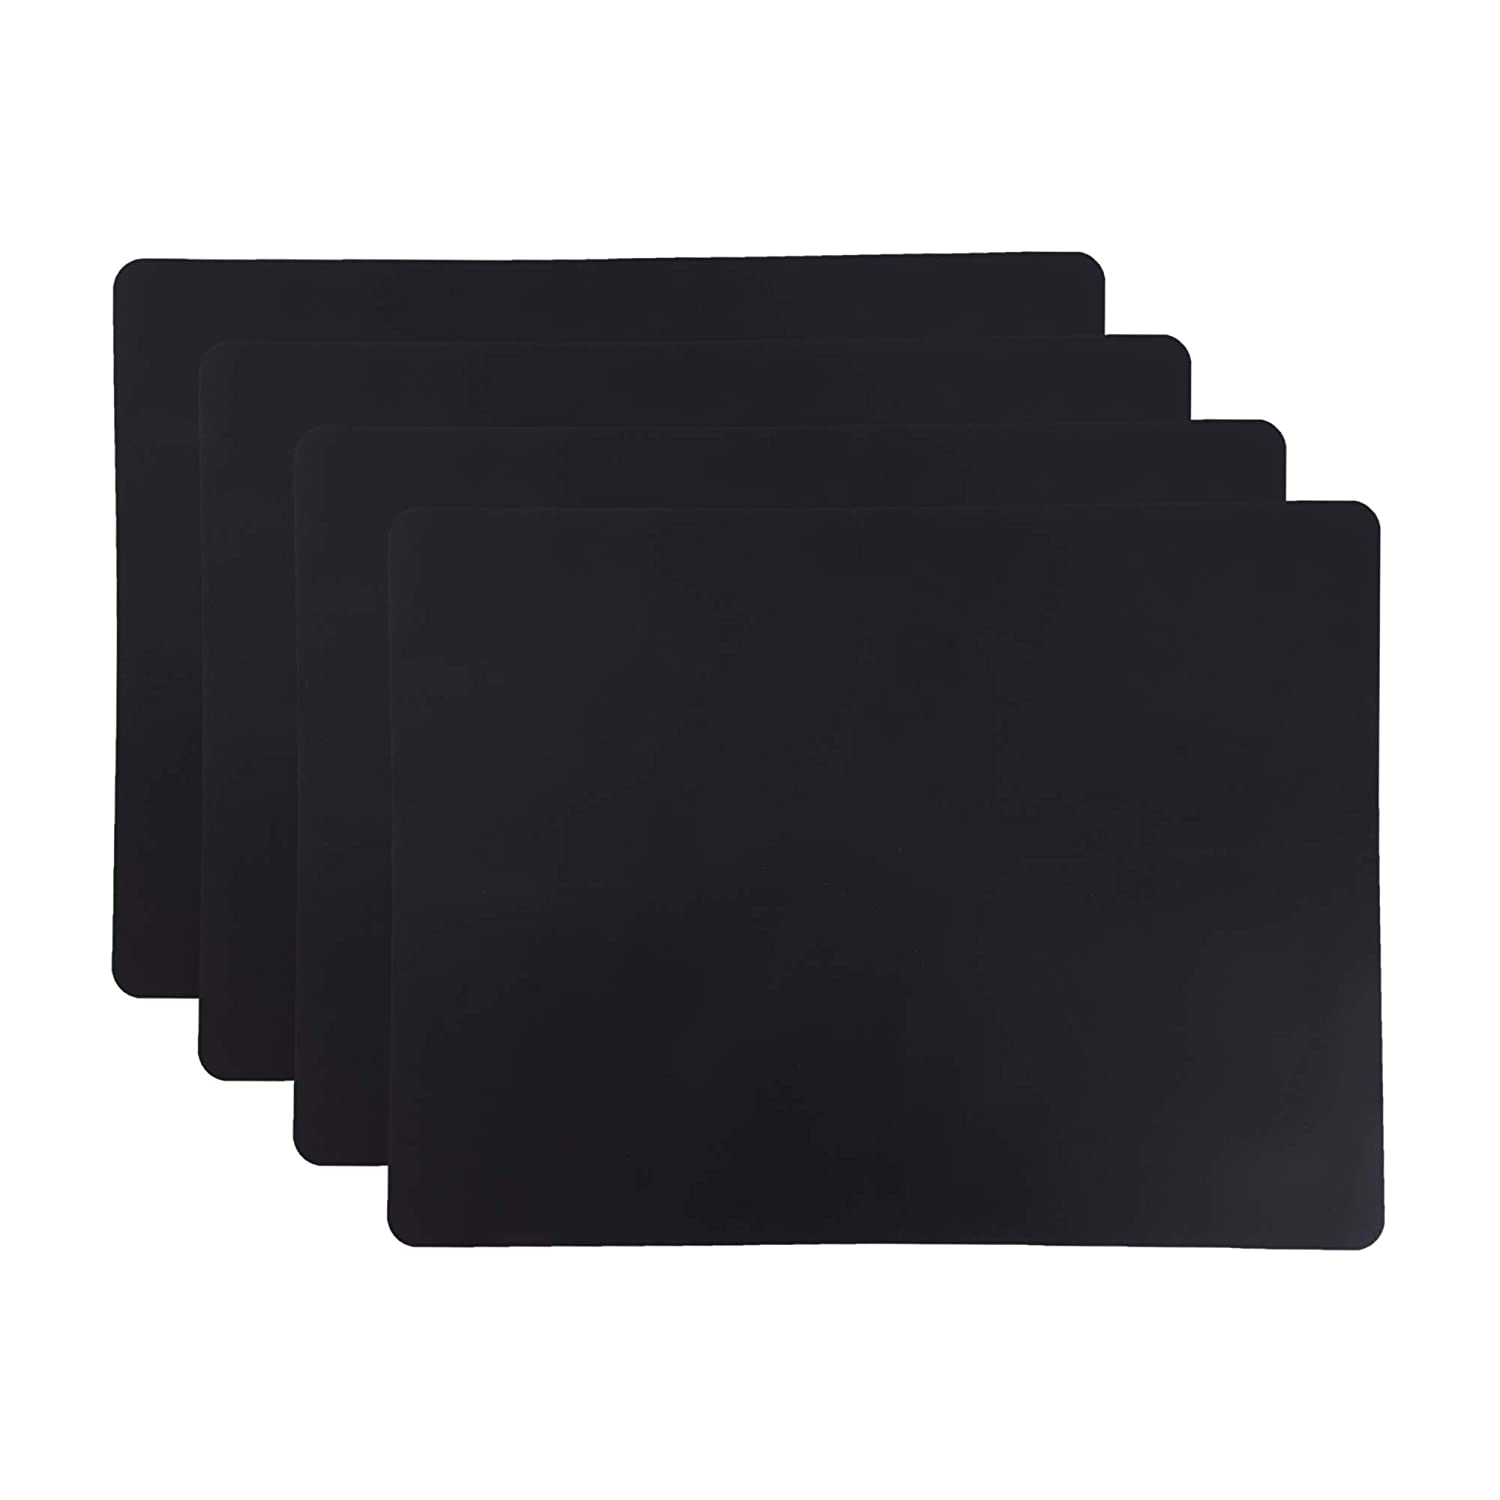 Whalesee Silicone Placemat Set 4-Piece - Kids Placemats – Non Slip, Soft, Heat Resistant, Waterproof, Food Grade Toddler Place Mats (Black)